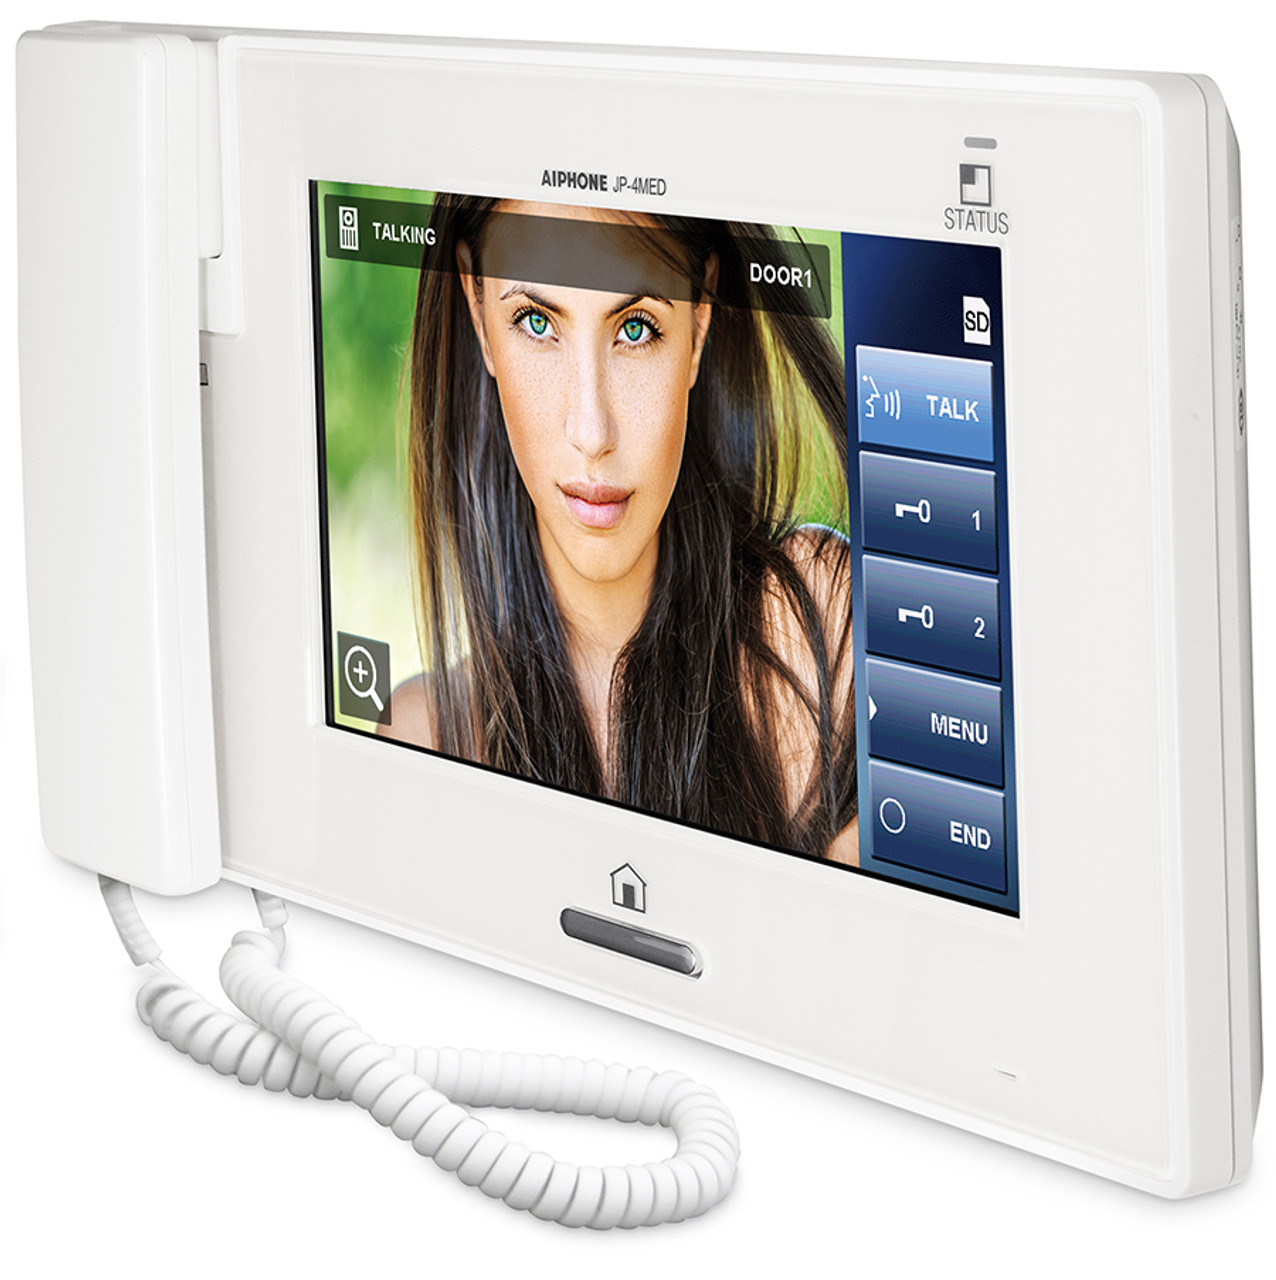 Aiphone Jp 4med 7 Quot Lcd Touch Screen Ptz Video Intercom